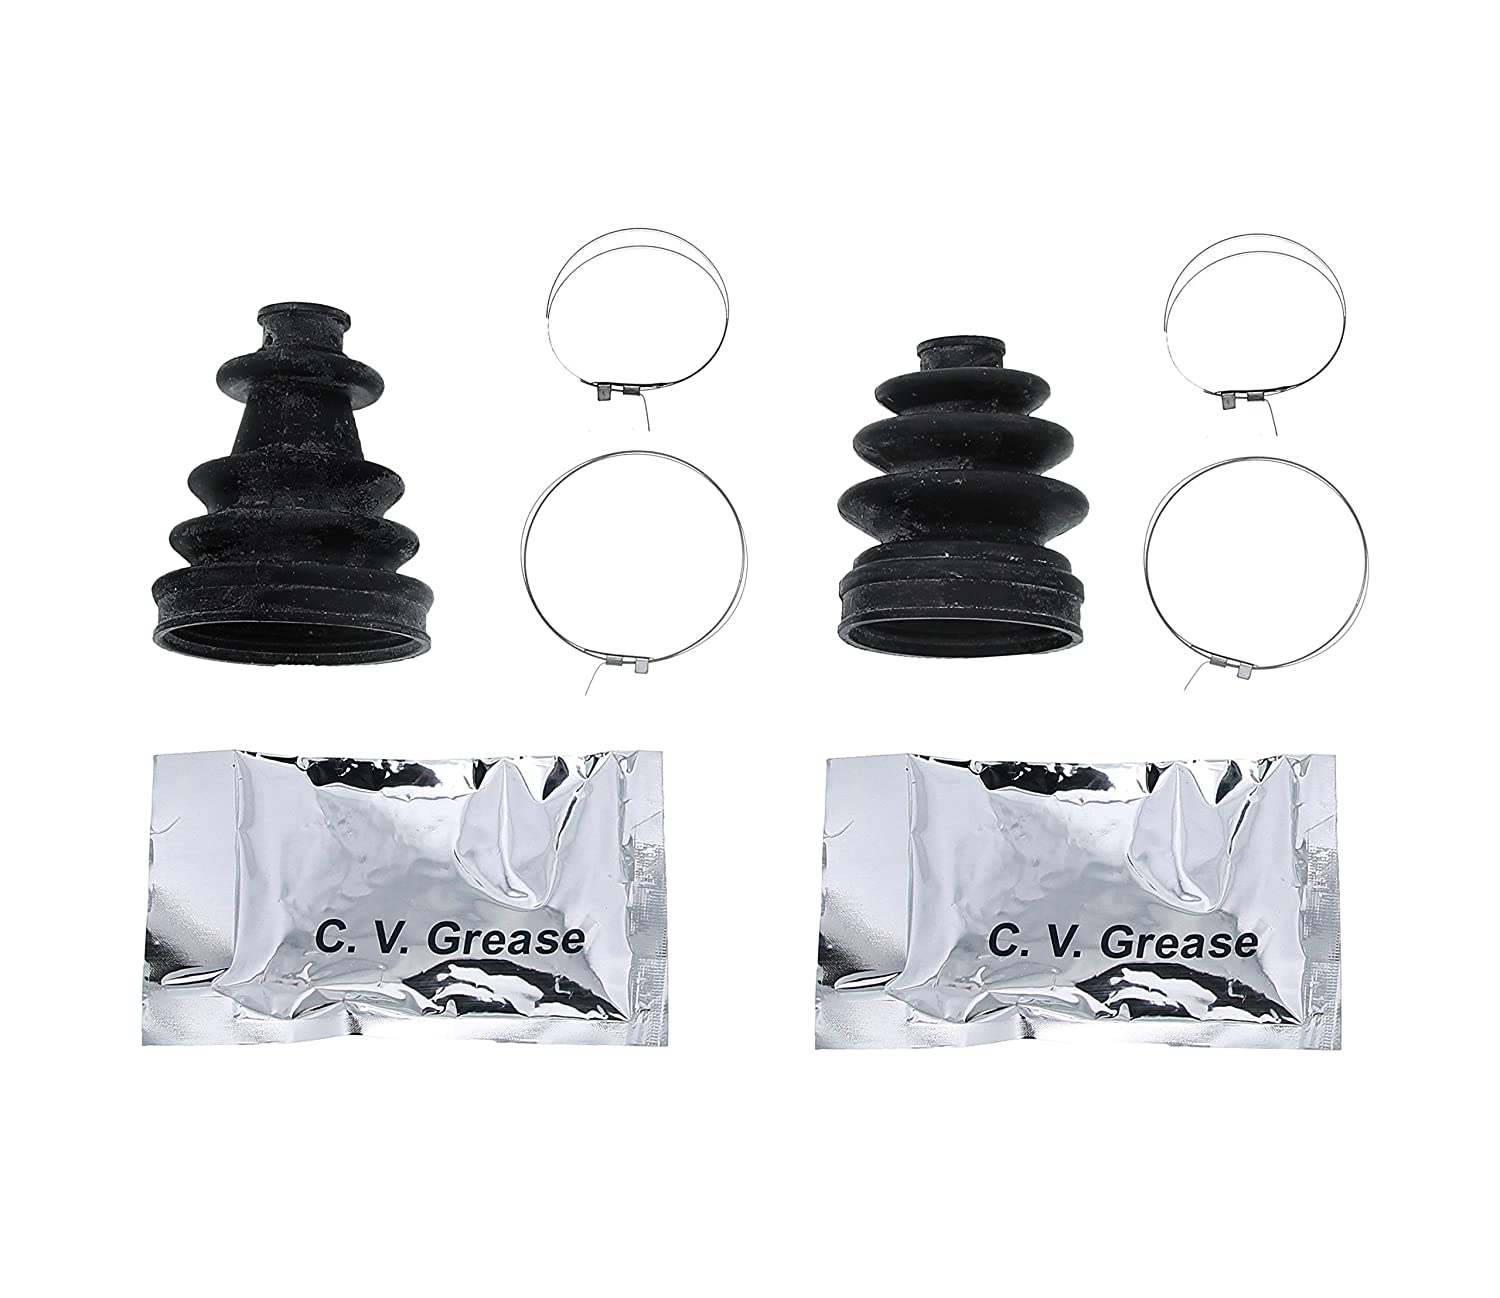 Polaris RZR 800 CV Boot Kit Rear Inner and Outer Rubber 2011-2014